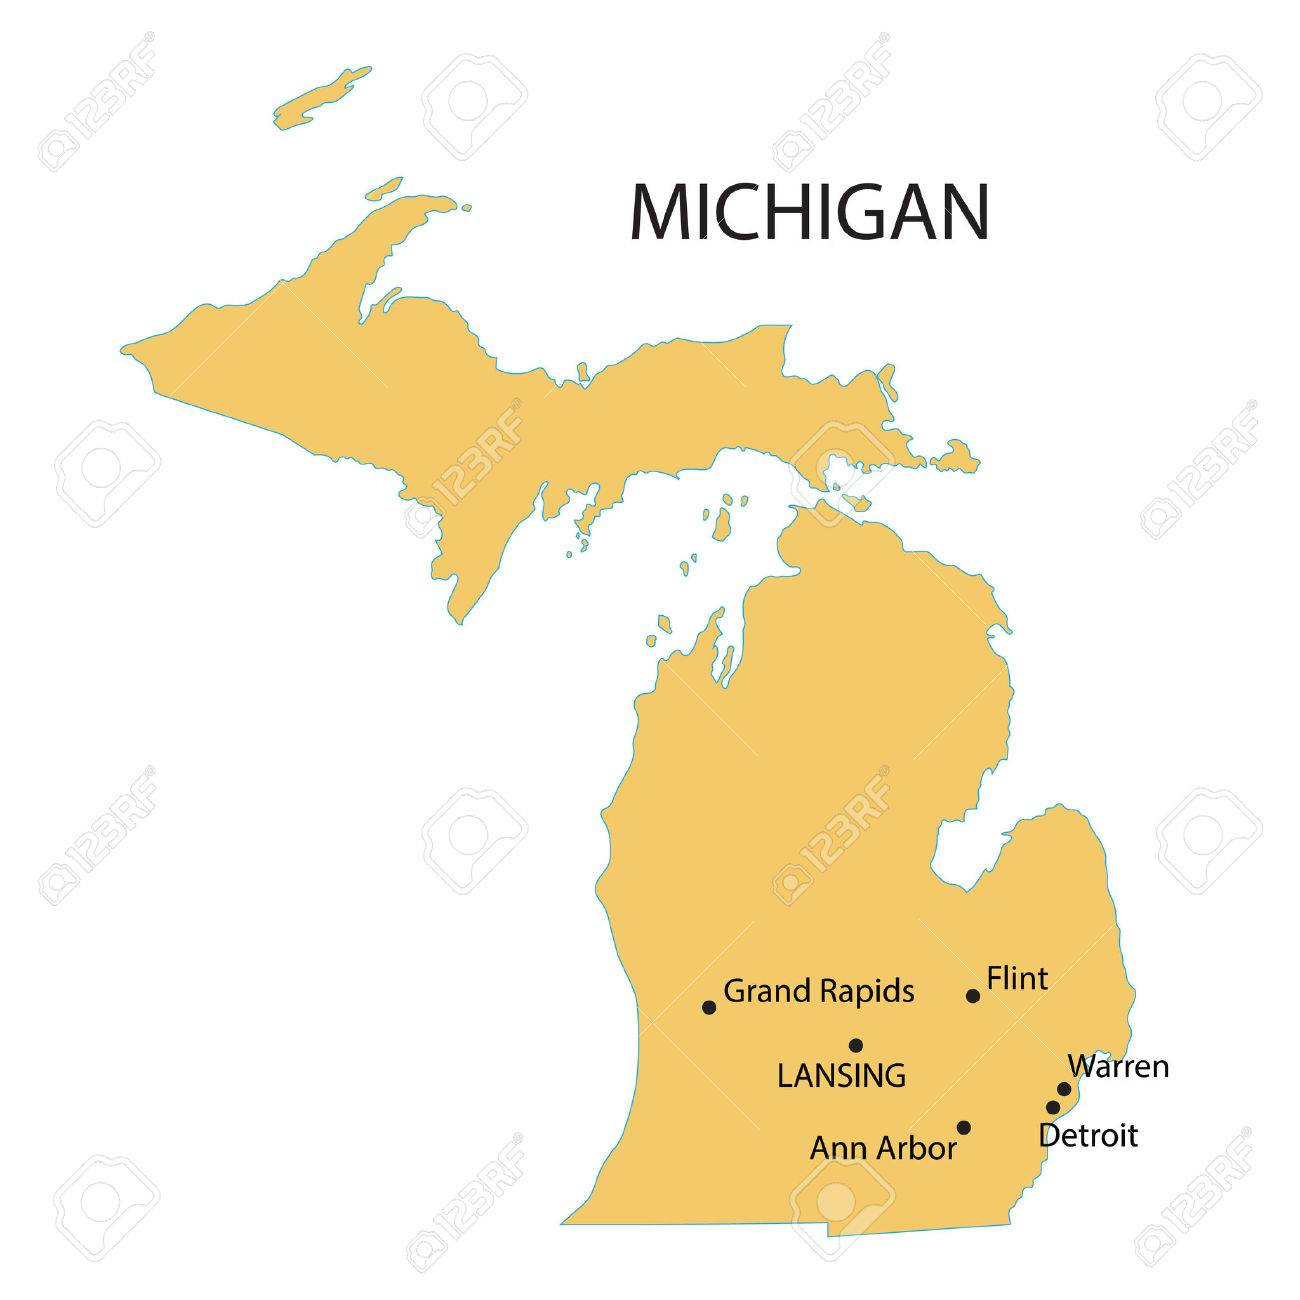 yellow map of Michigan with indication of largest cities on cities in mt, cities in western kentucky, cities in neb, cities in st. bernard parish, cities in cleveland ohio, cities in dallas county, cities in southern maine, cities in northern colorado, cities in eastern ohio, cities in northwest indiana, cities in ct, cities in fulton county ga, cities in la county, cities in southeast colorado, cities in southern colorado, cities in georgia area, cities in metro detroit, cities in northeast texas, cities in terrebonne parish, cities in riverside county,